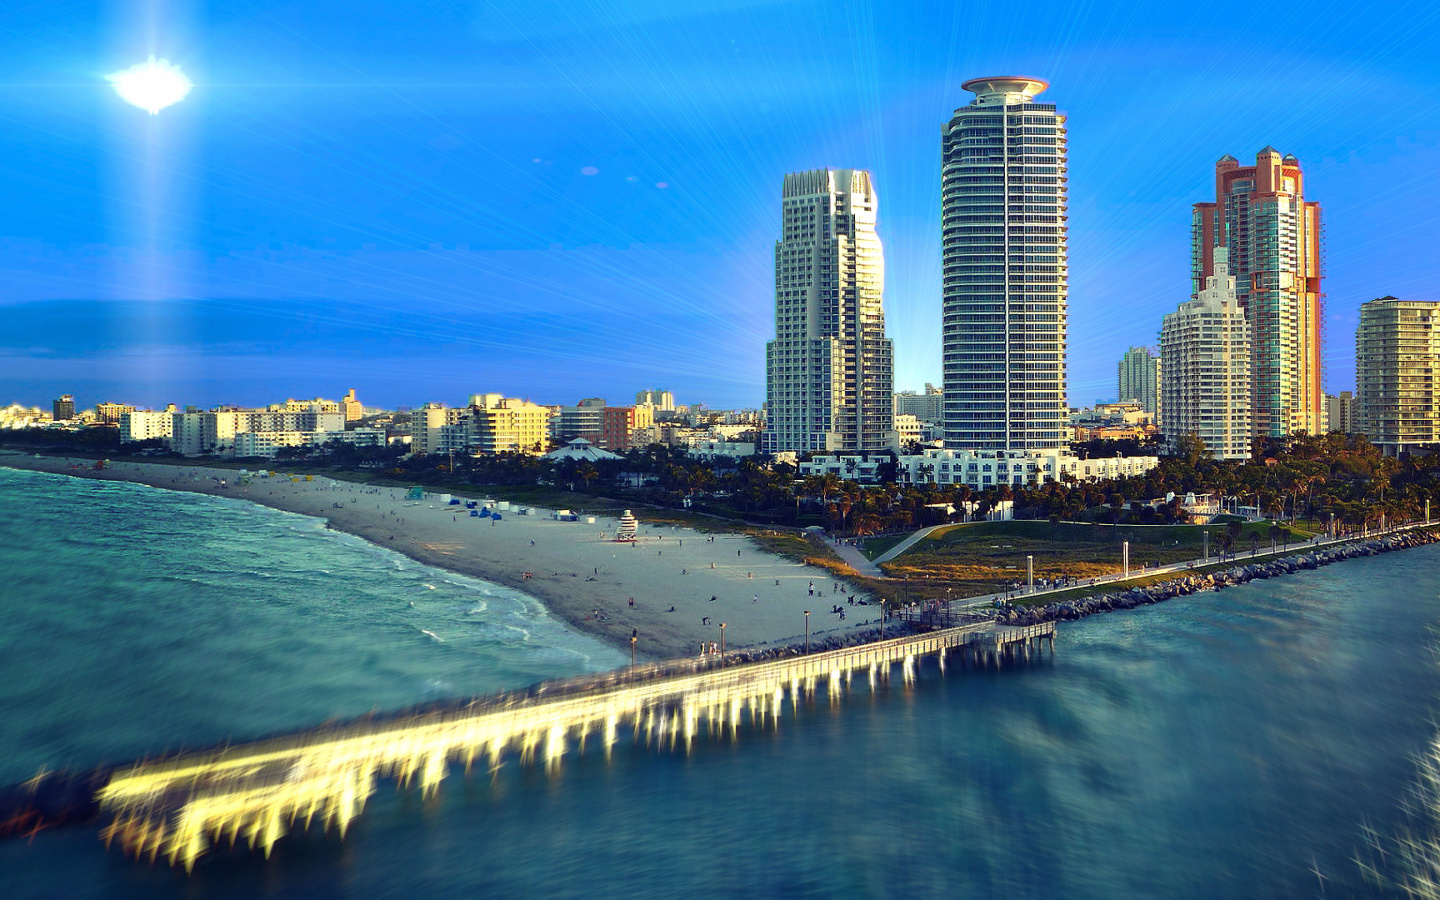 Fondo de pantalla Miami Beach with Hotels 1440x900